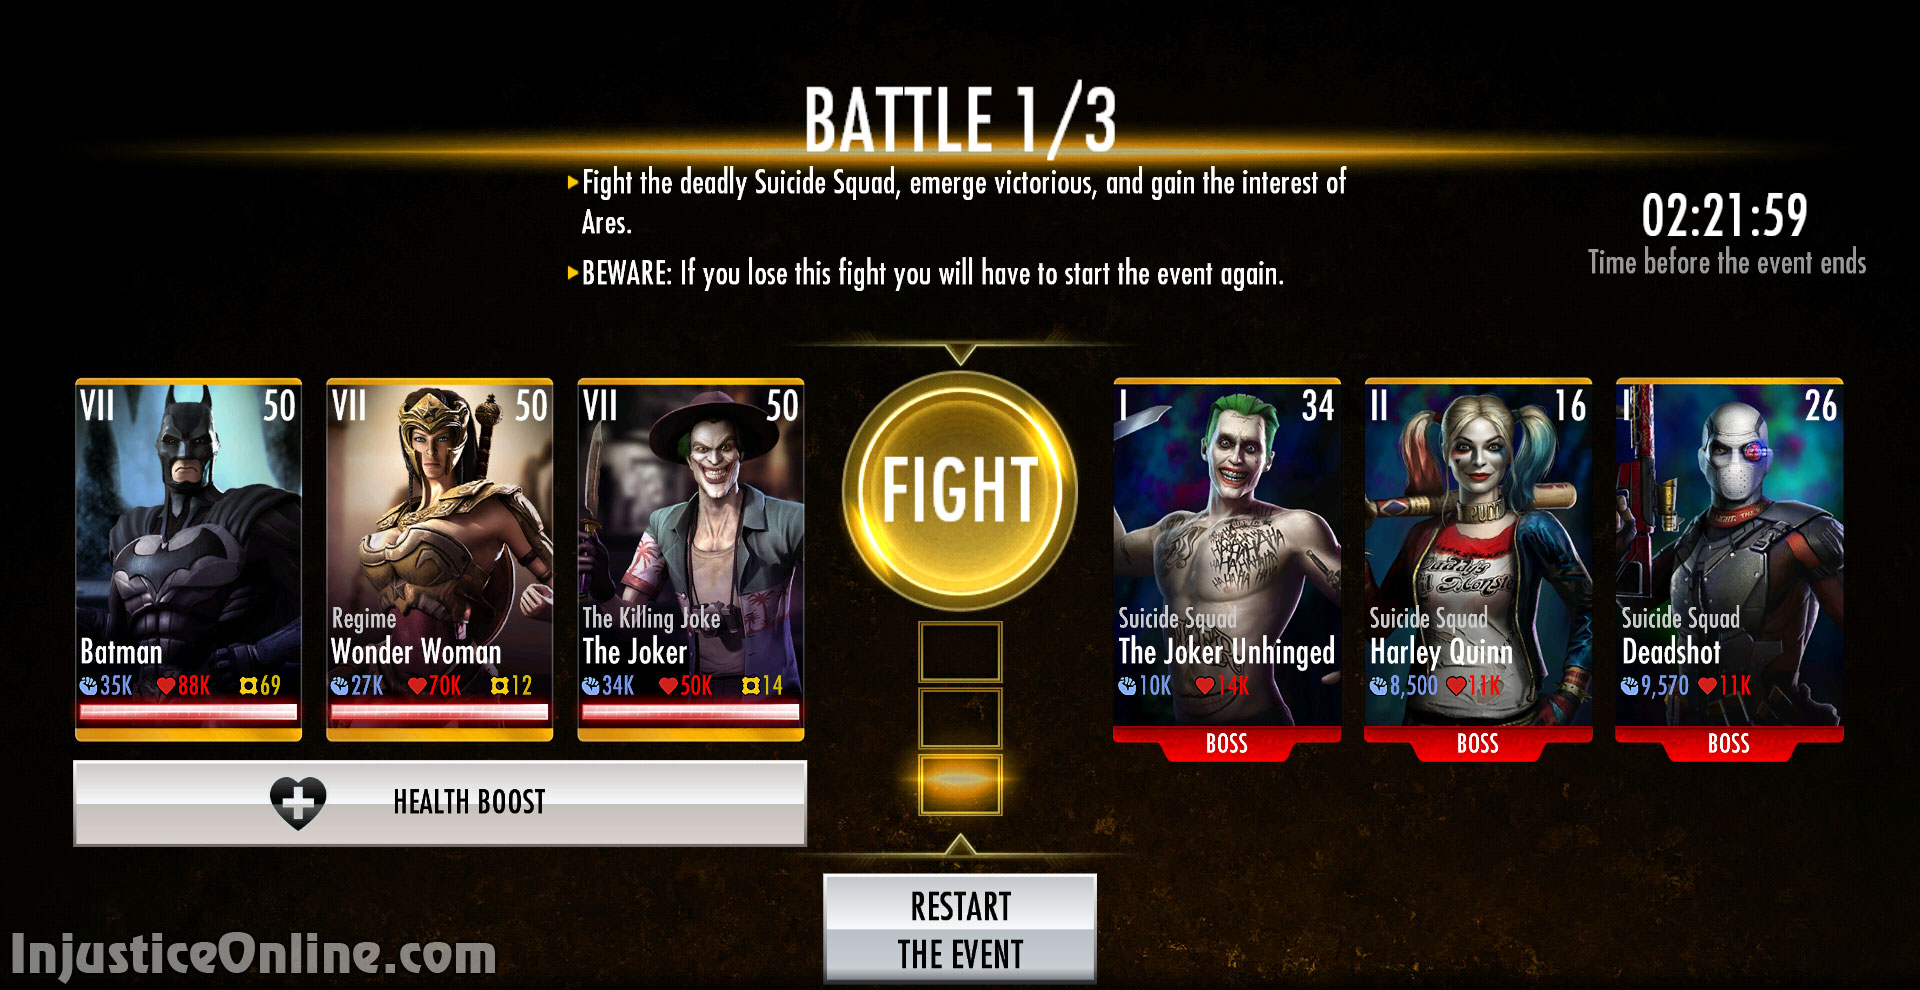 the battle against injustice Aquaman is a playable character in injustice:  aquaman was confirmed in his own story trailer 3 days before his battle against cyborg in the injustice battle arena.